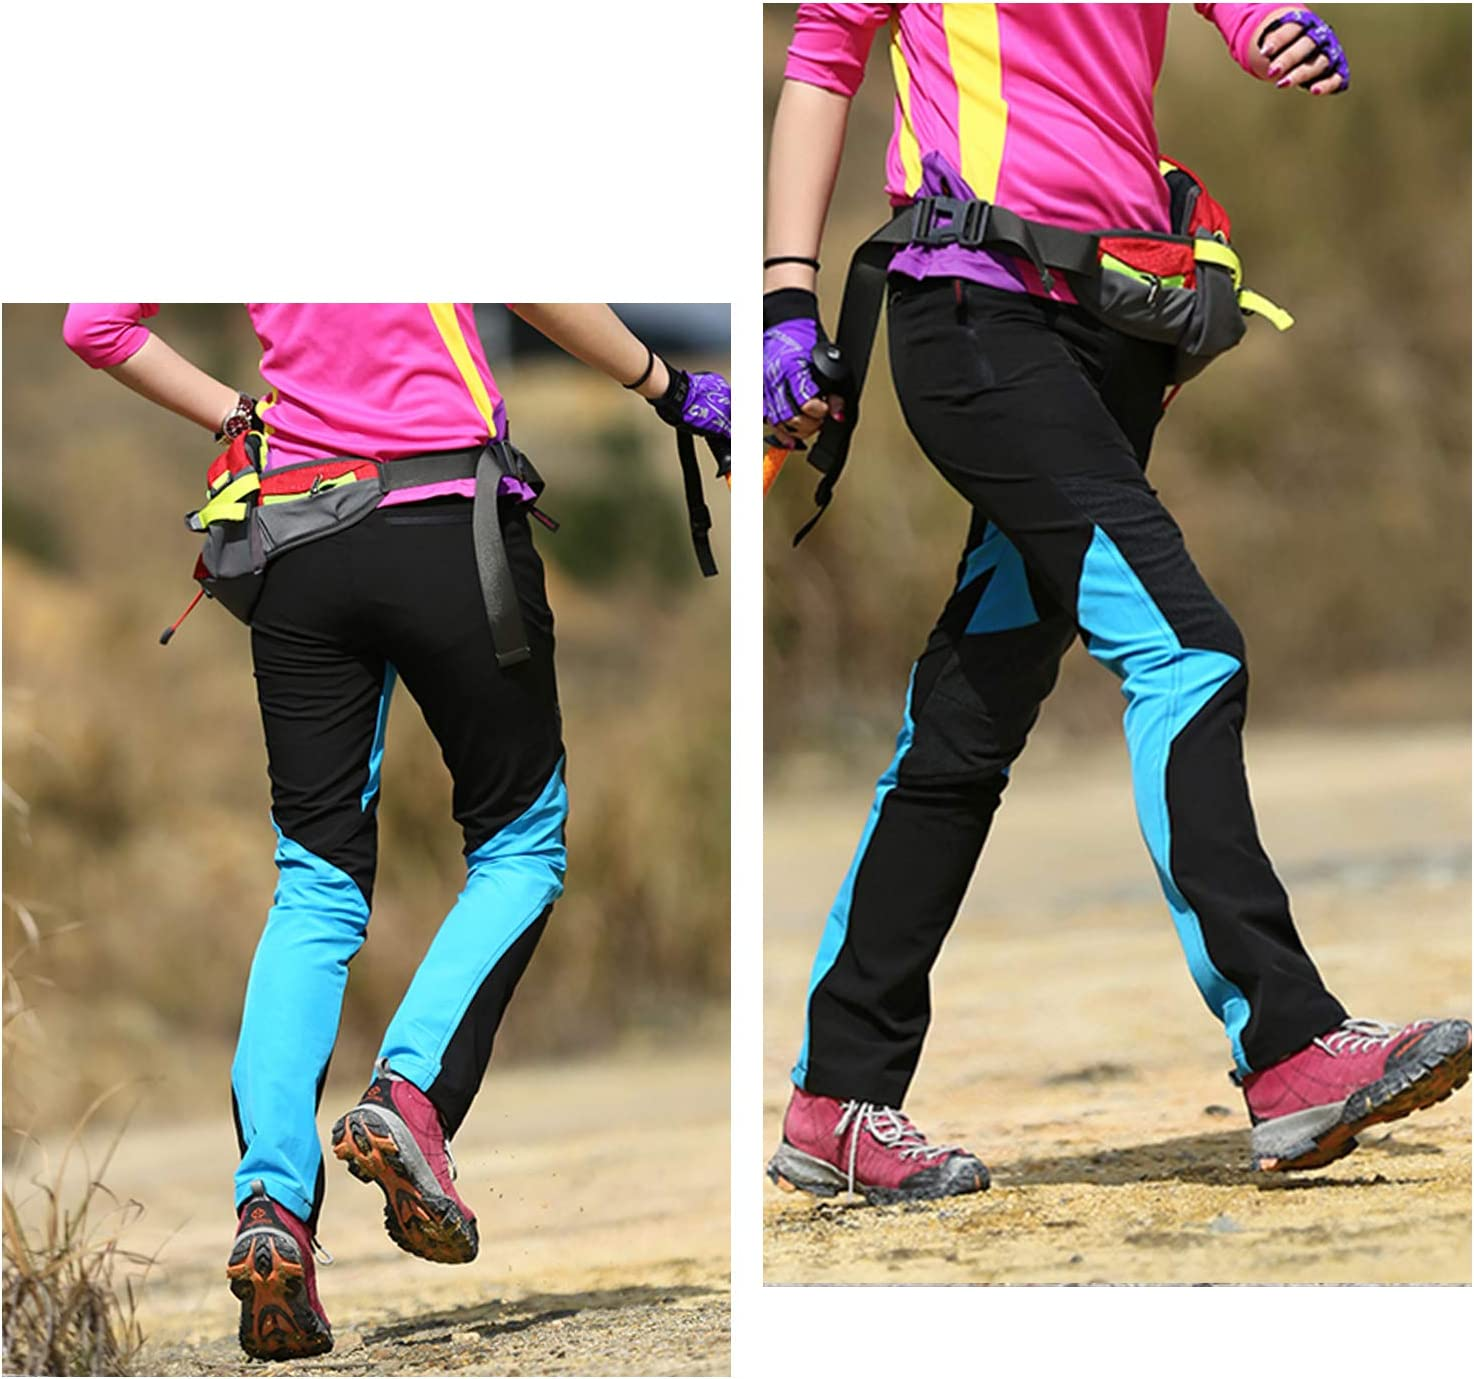 LHHMZ Women Waterproof Hiking Trousers Breathable Lightweight Casual Outdoor Sports Trousers Quick Dry Walking Climbing Trekking Pants